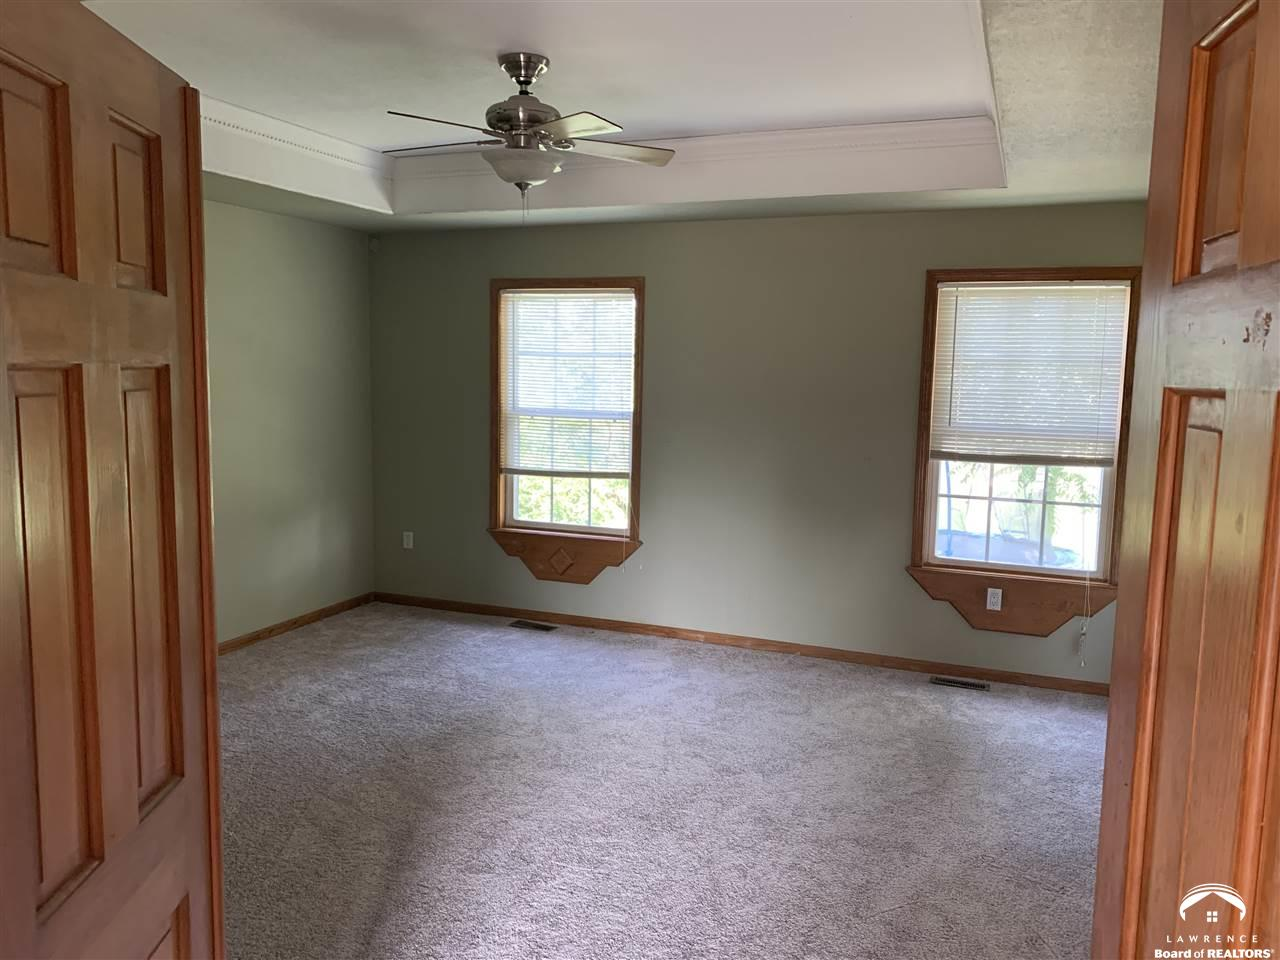 532 900, Lawrence, Kansas 66047, ,Residential,For Sale,900,153173